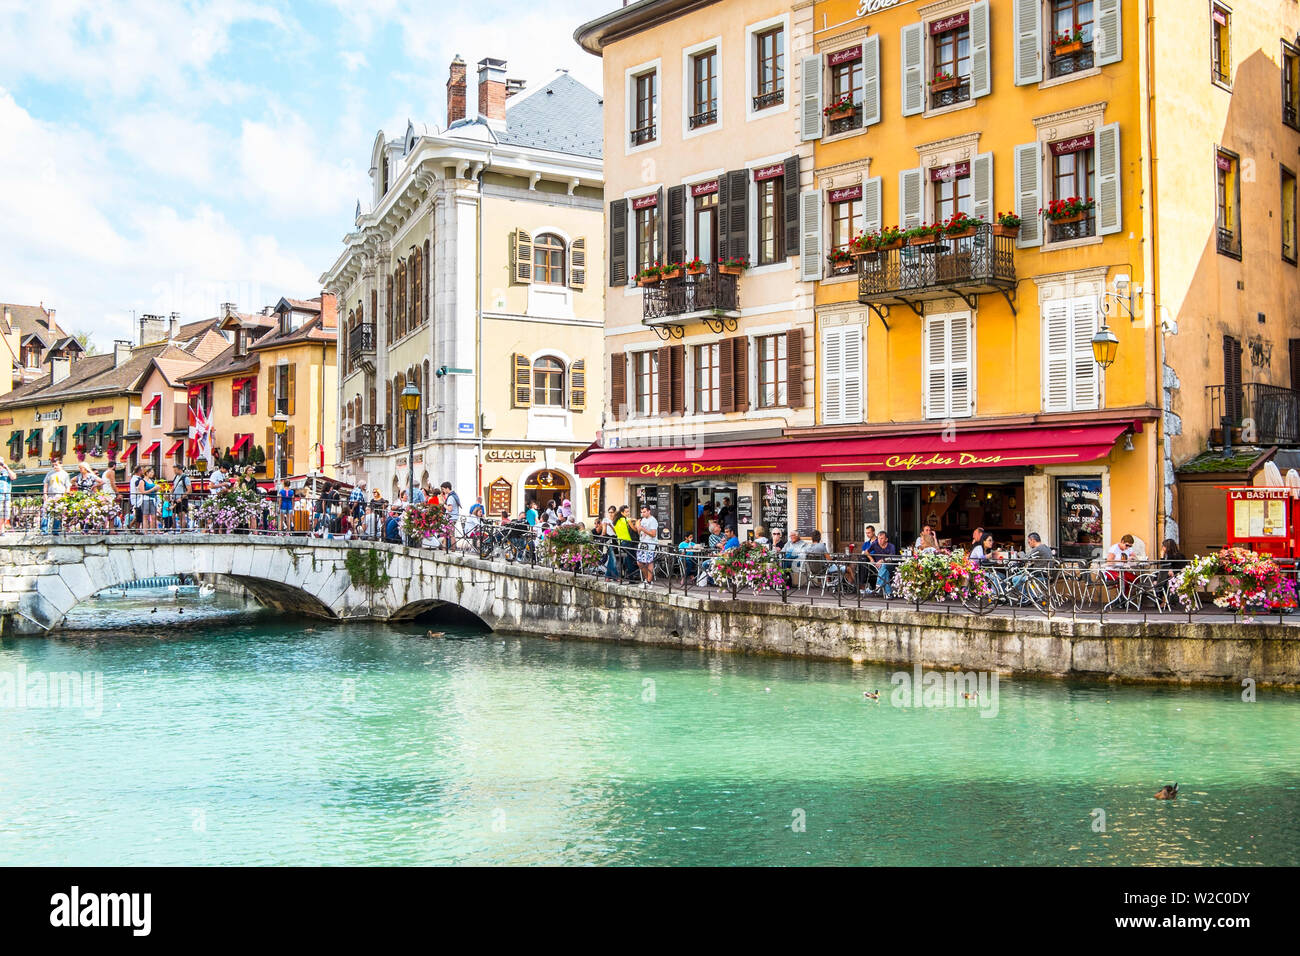 Annecy, Lake Annecy, Haute-Savoie, Rhone-Alpes, France - Stock Image